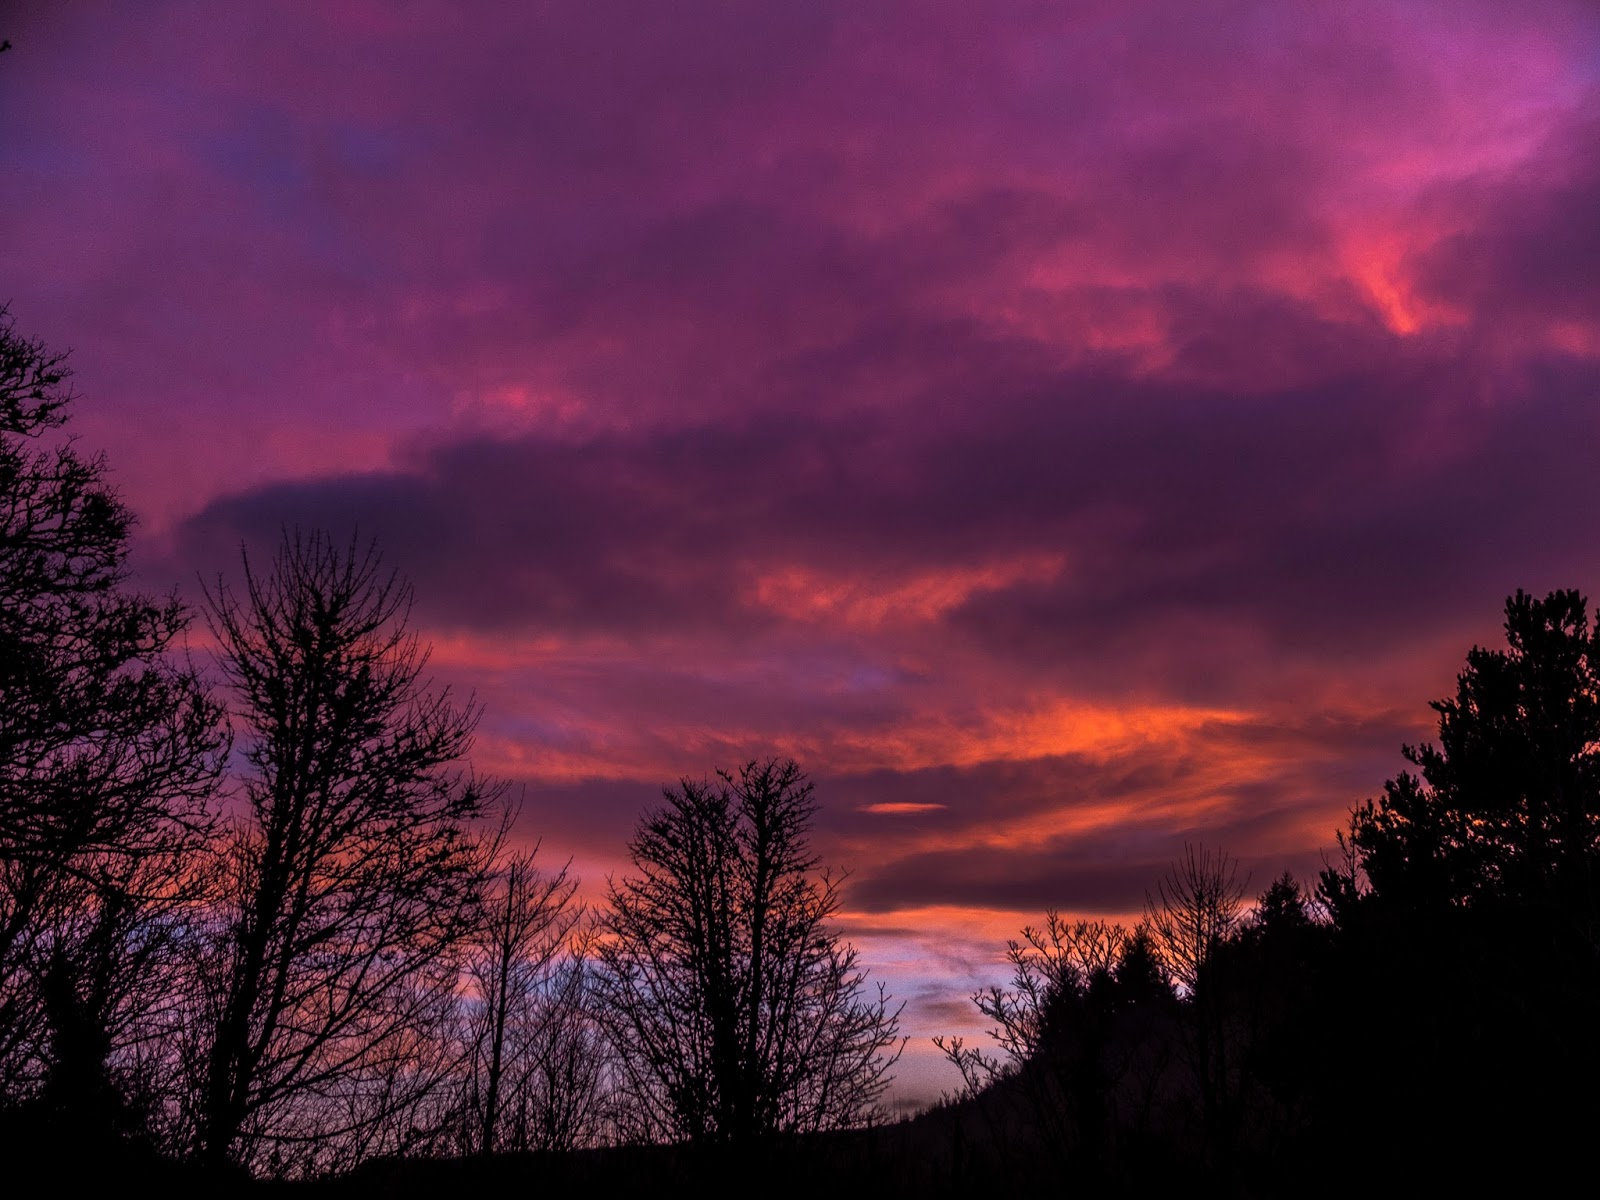 Tree silhouettes at sunset with dramatic pink and purple clouds in North Cork, Ireland.